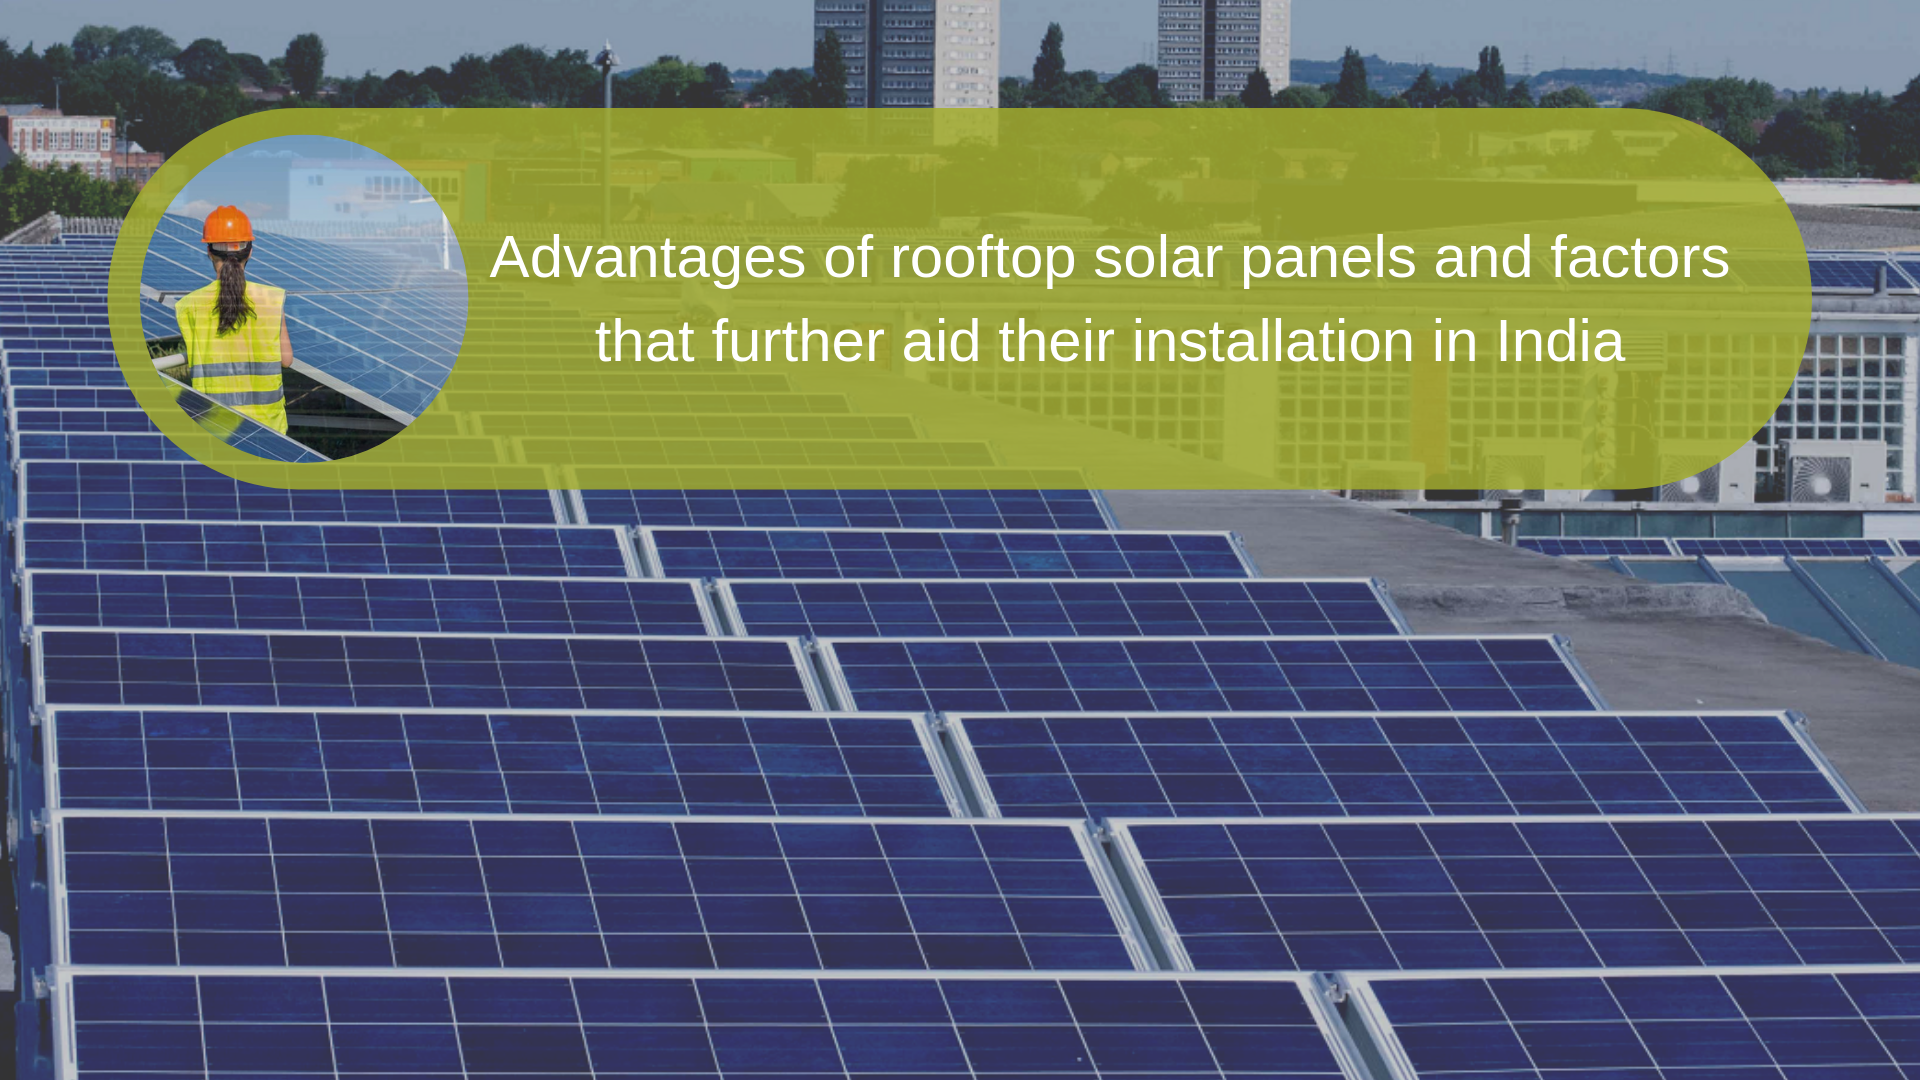 Advantages of Rooftop Solar Panels & Factors That Further aid Their Installation in India